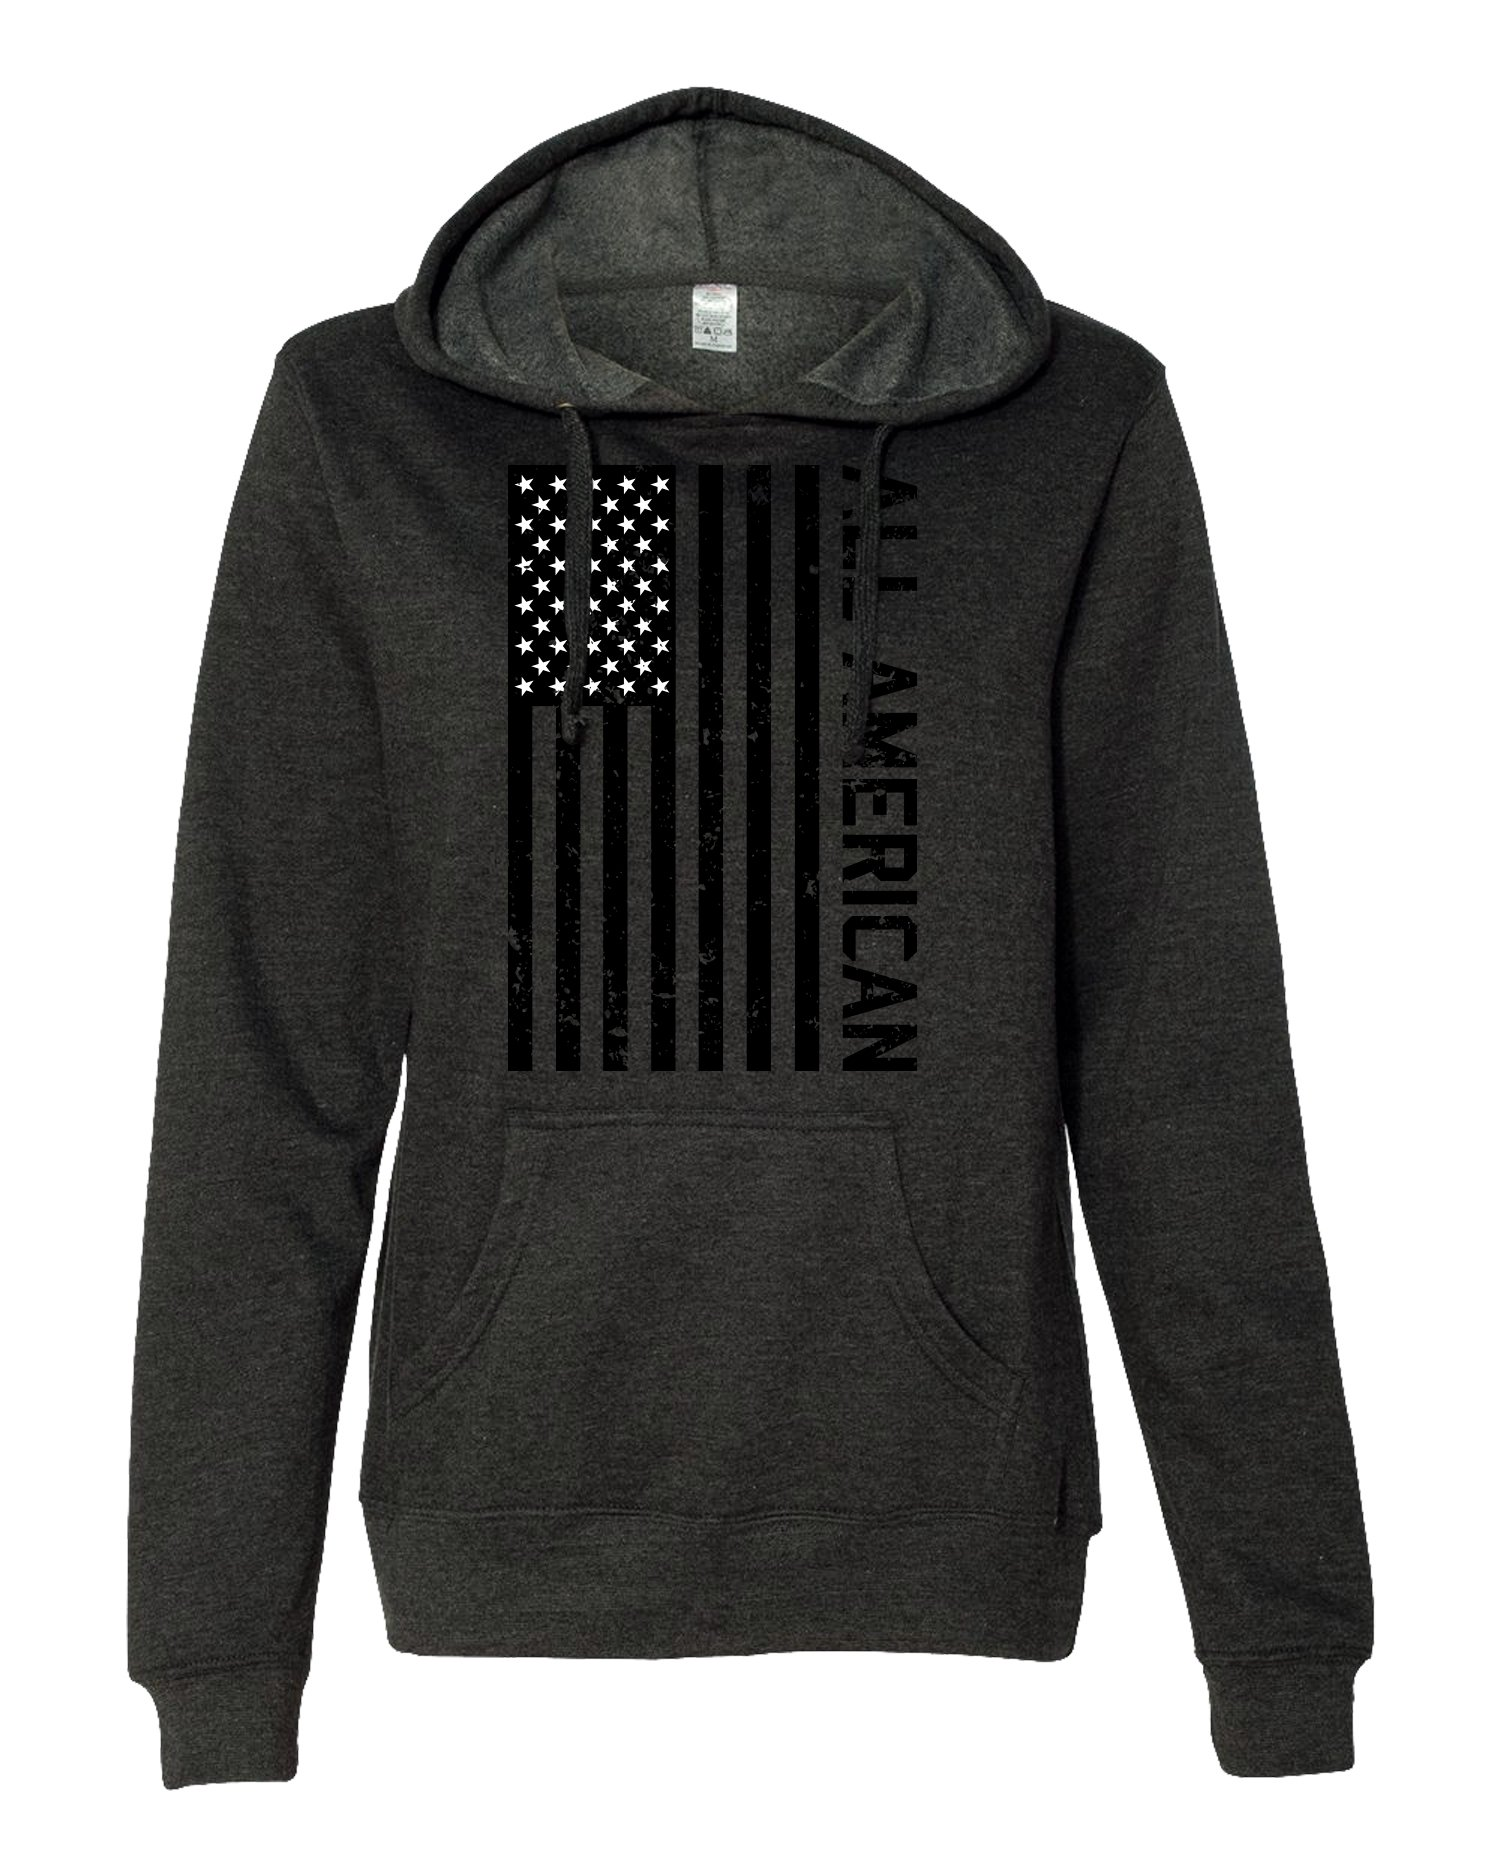 Bang Bang Apparel Women's 'All American' Lightweight Pullover Hoodie (Charcoal Heather, Medium)